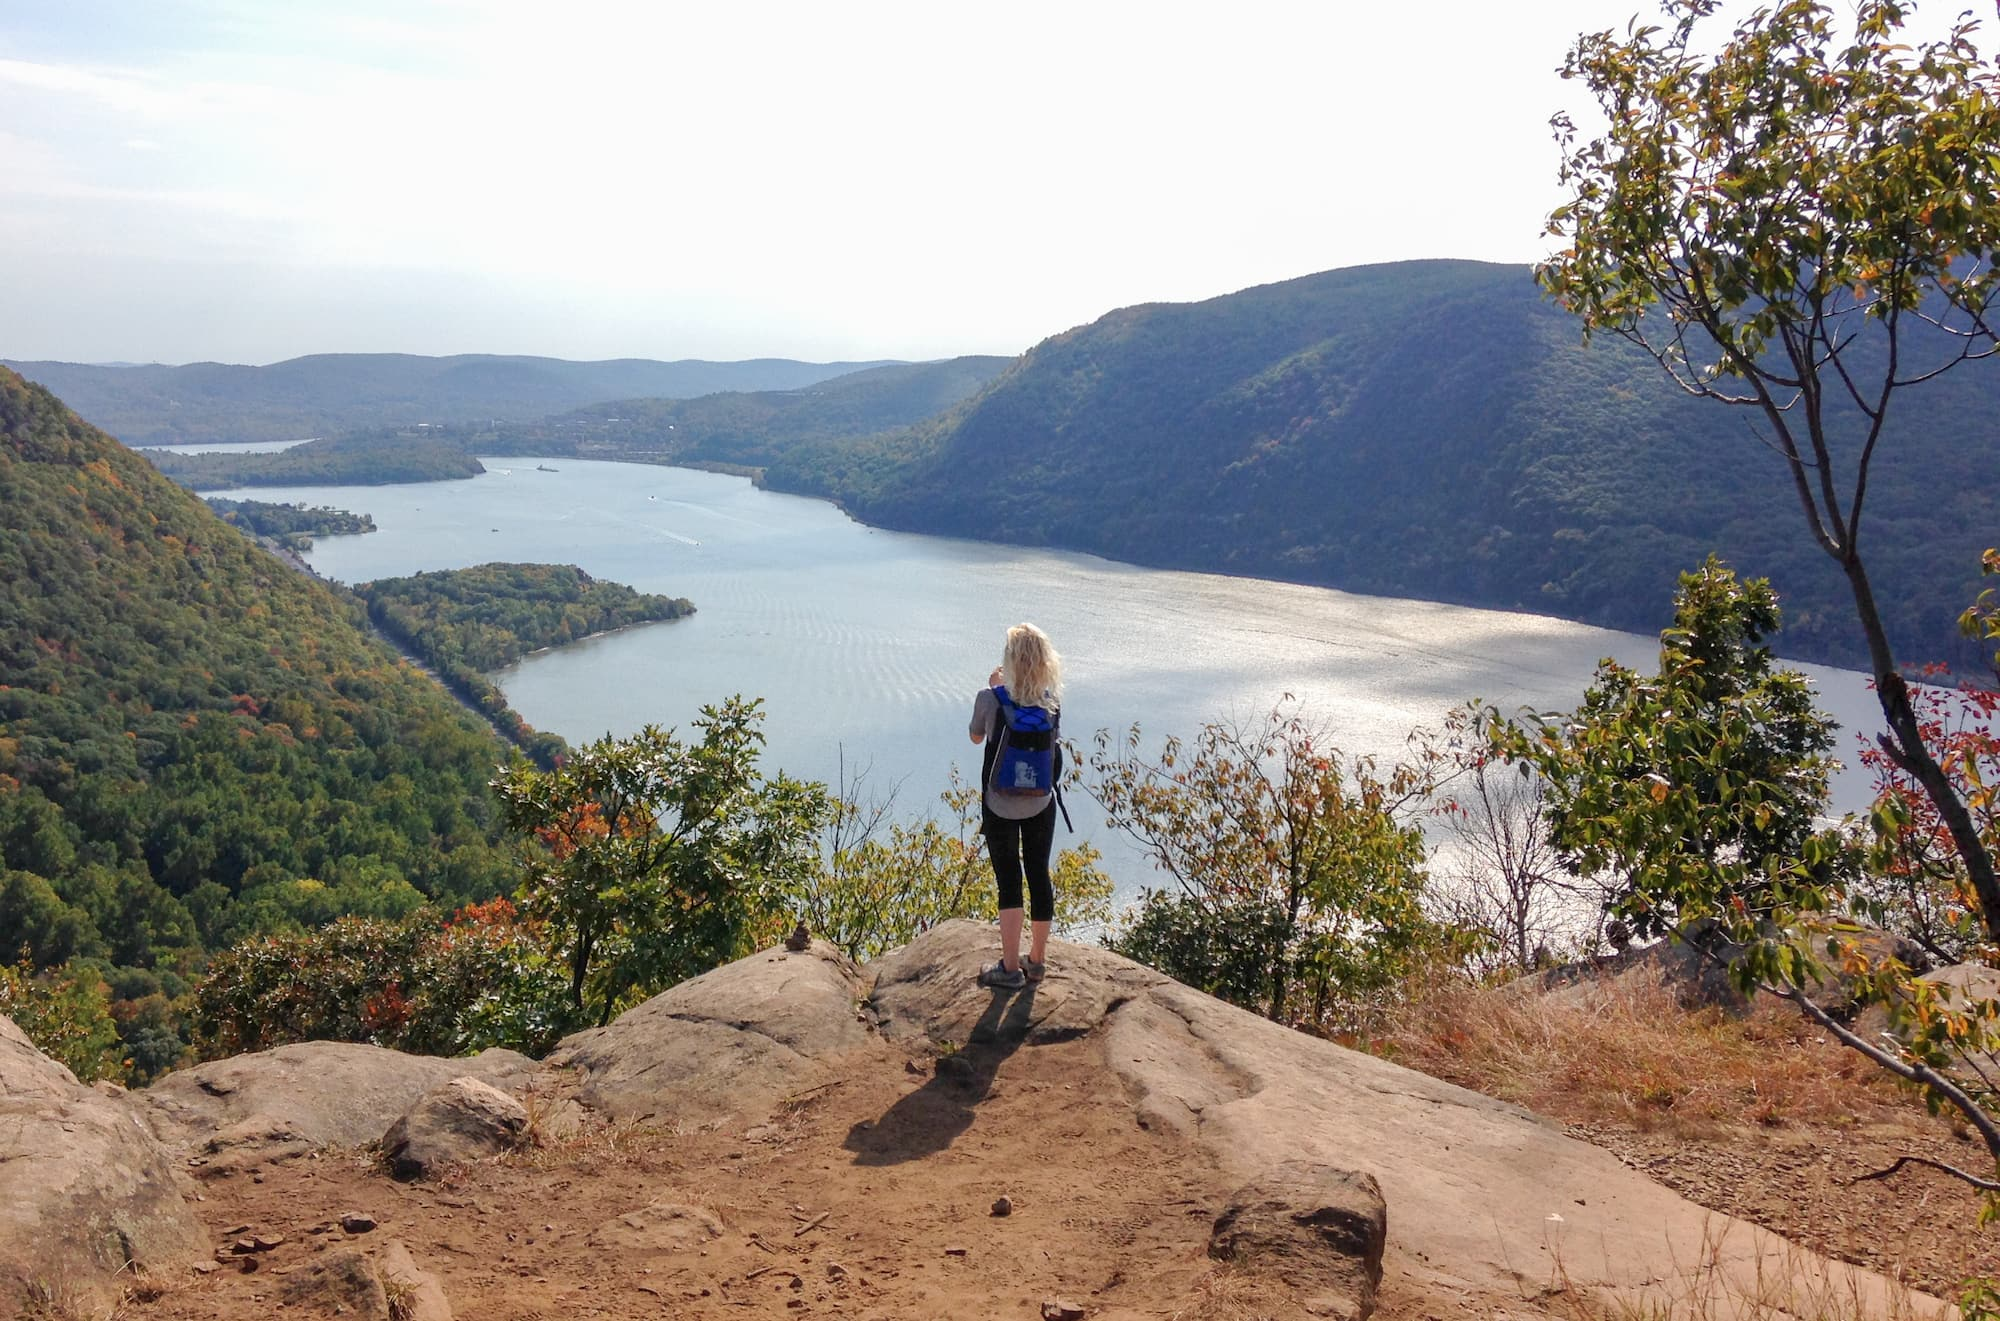 Female hiker standing over viewpoint in gorge with river flowing through.